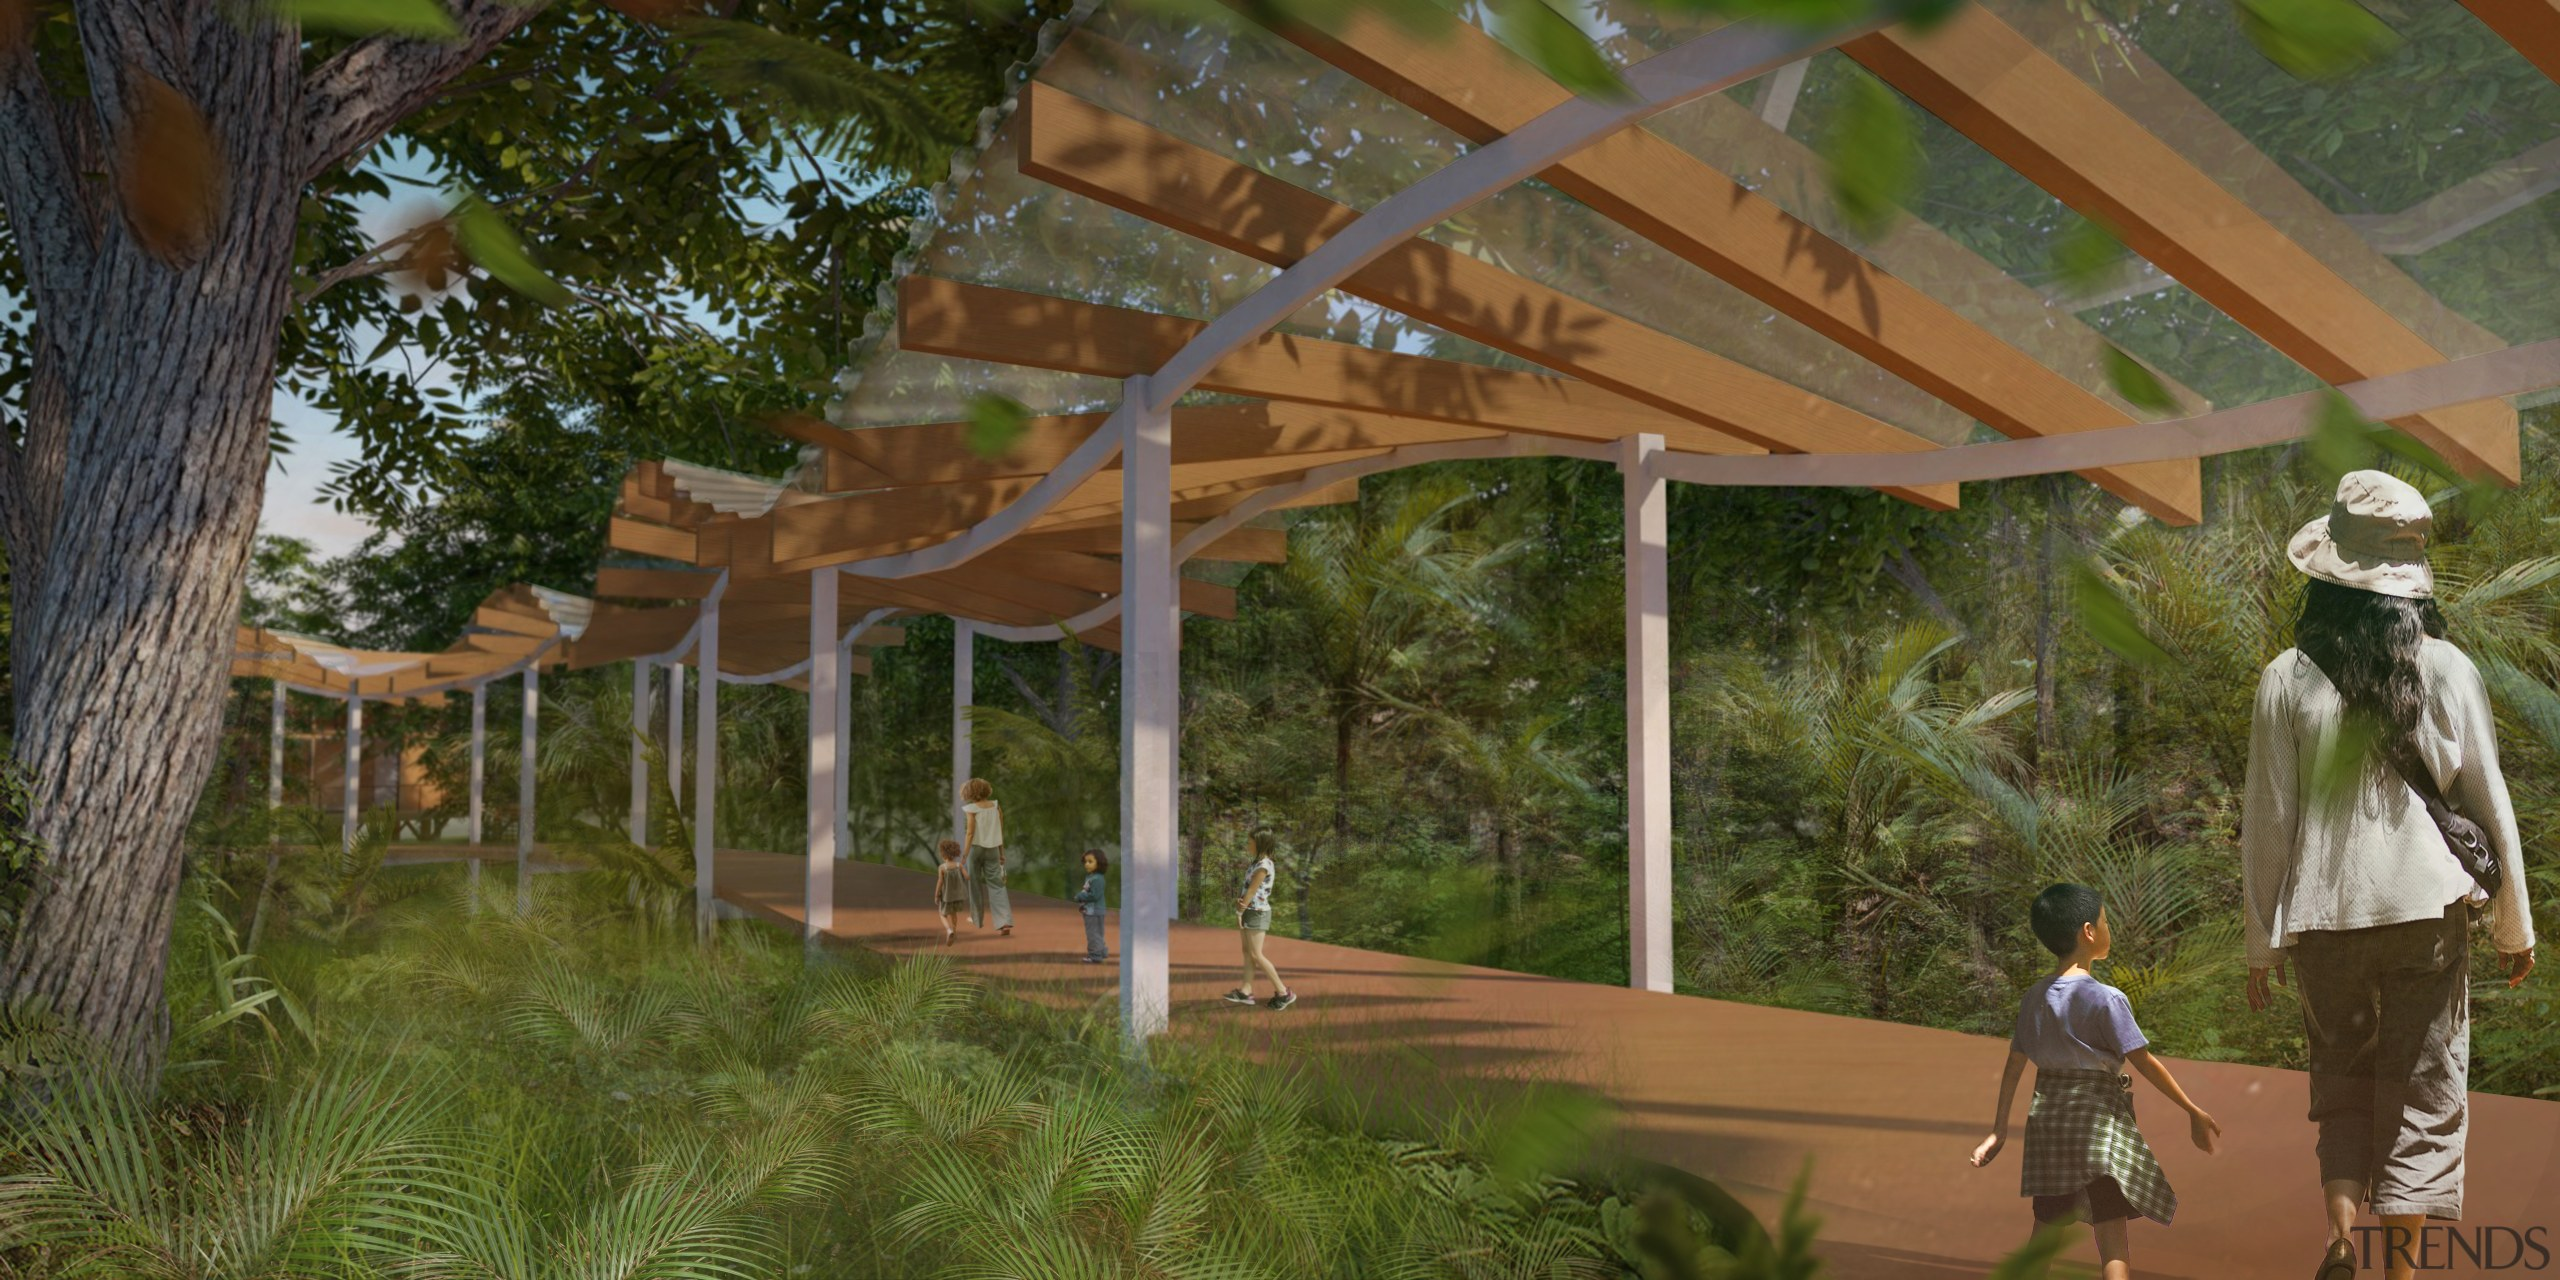 A fully-inspired Gaia based childcare centre planned to architecture, home, house, outdoor structure, pavilion, plant, property, real estate, tree, brown